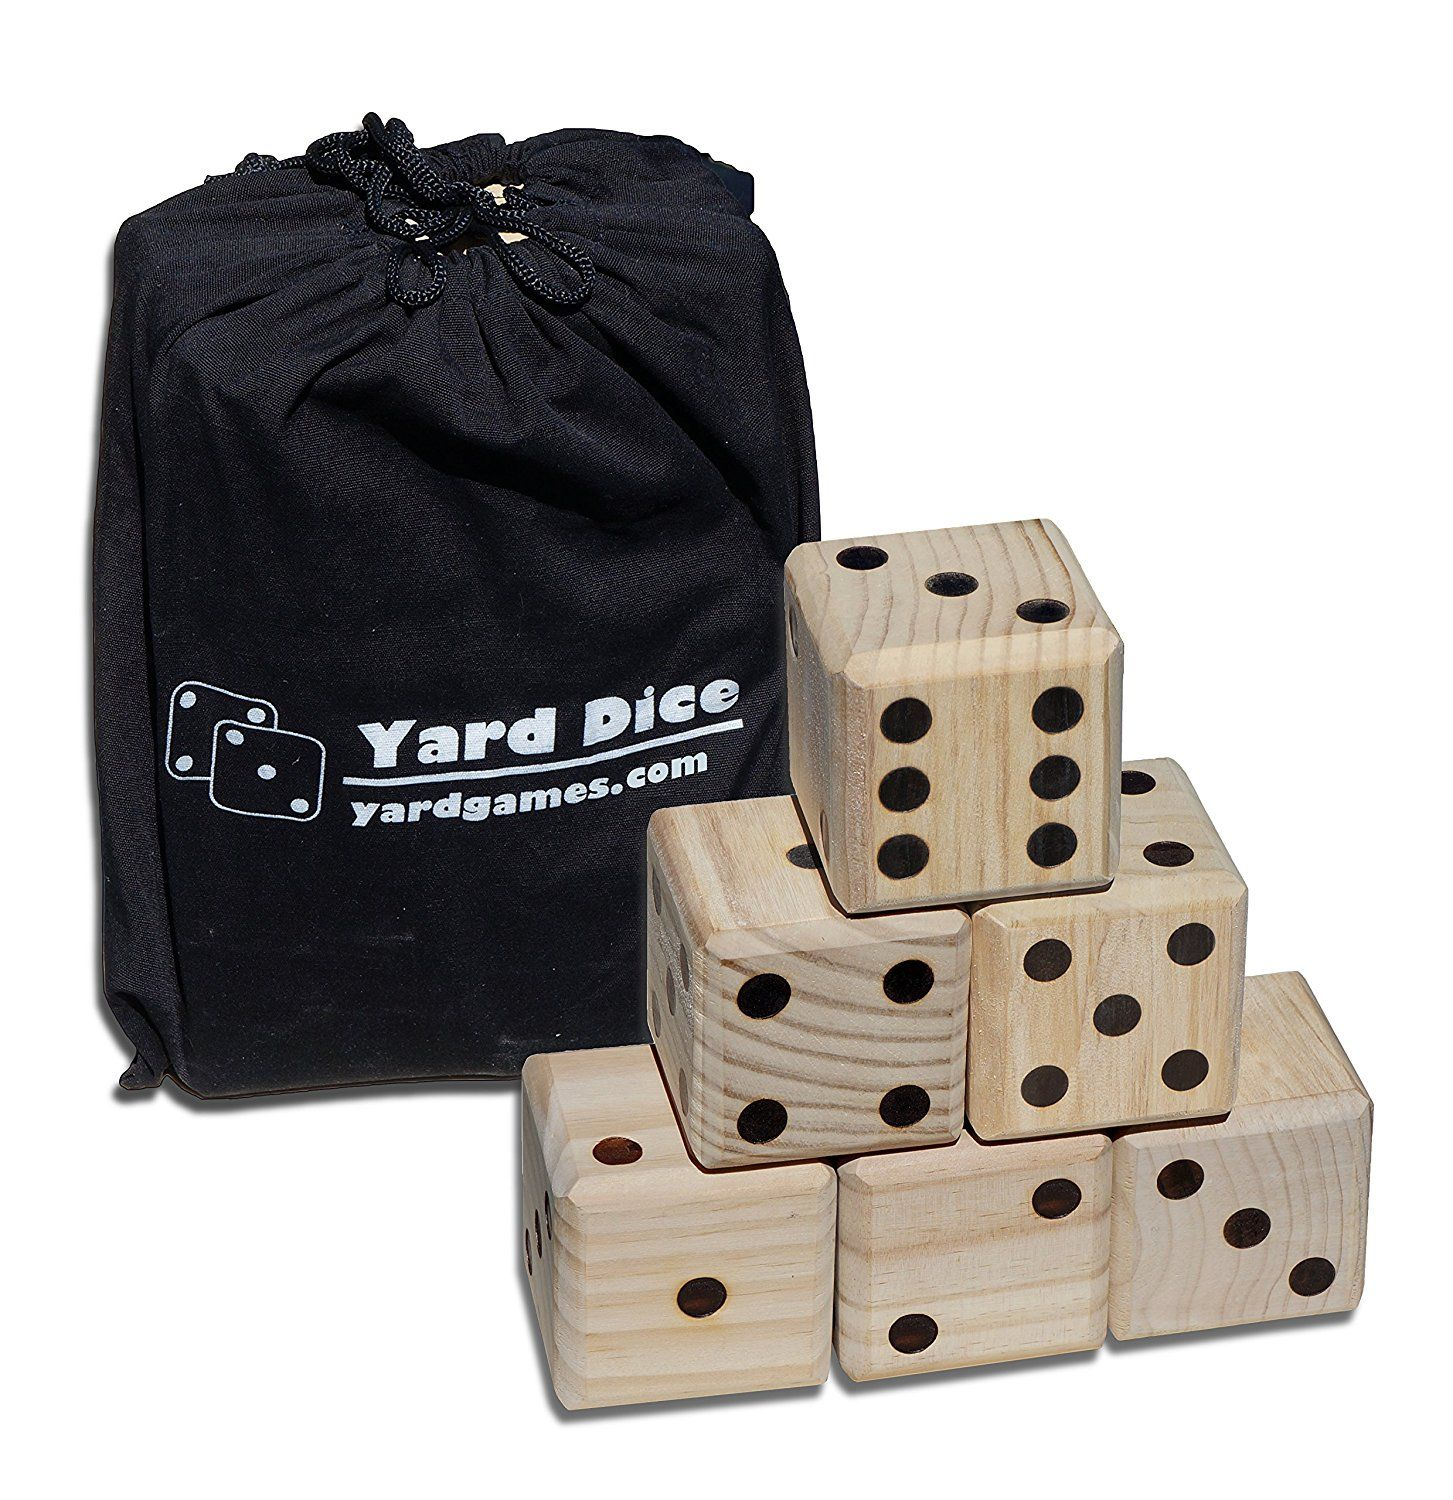 Giant wooden yard dice by yard games toys